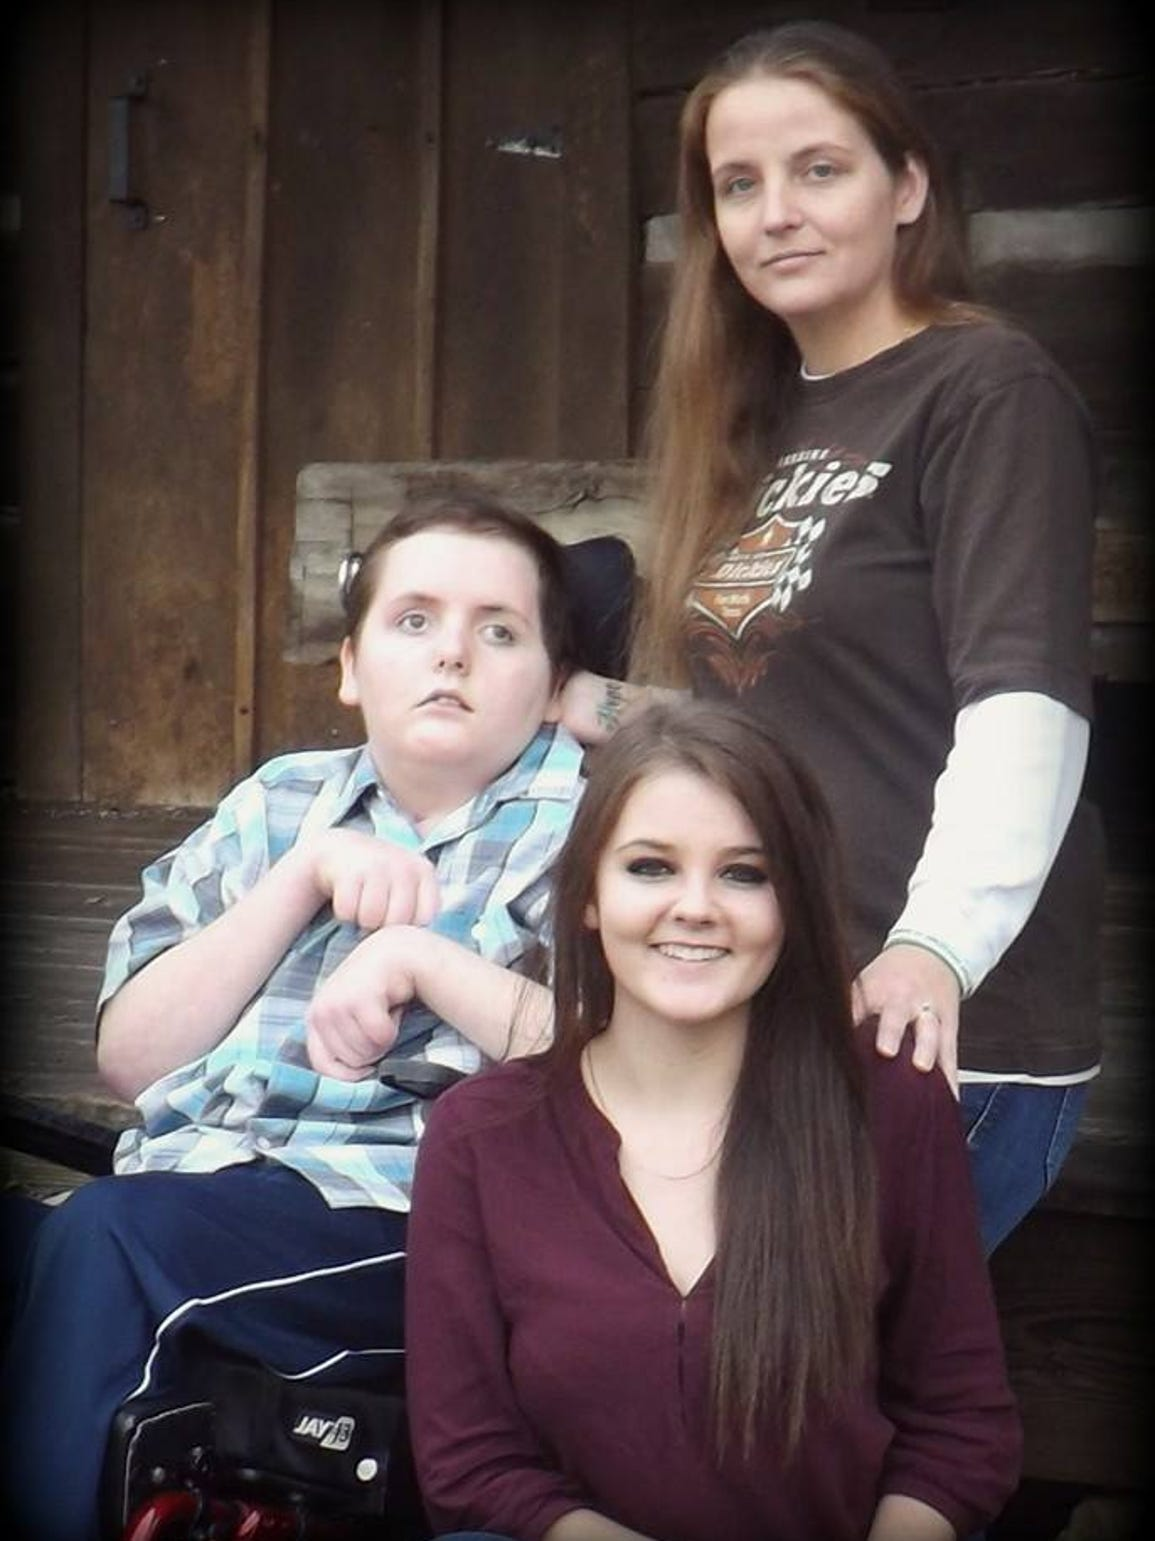 Robert with his mother, Laura, and sister, Erica.